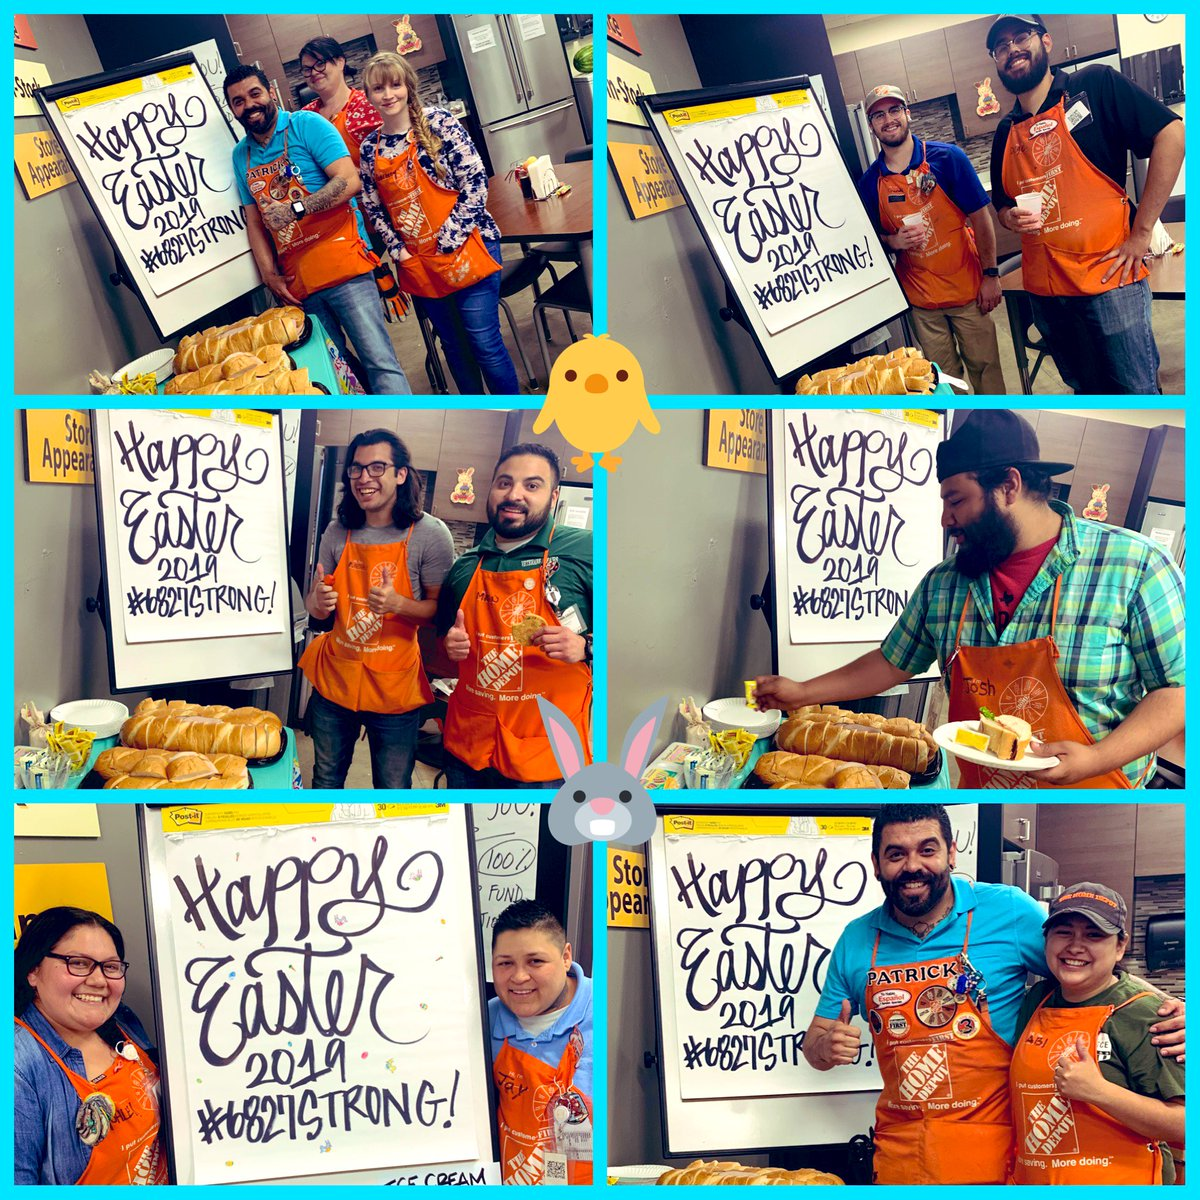 Wishing Everyone A Happy Easter! From Our #HomeDepotFamily To Yours! Sanwiches with all the fixins! Provided from the VOA Committee! Shout out to all of our associates, Thank You for all that you do! #6827STRONG #LivingOurValues #HomeDepotFamily #TakingCareOfOurPeople #LetsDoThis <br>http://pic.twitter.com/kiwlmScD4R